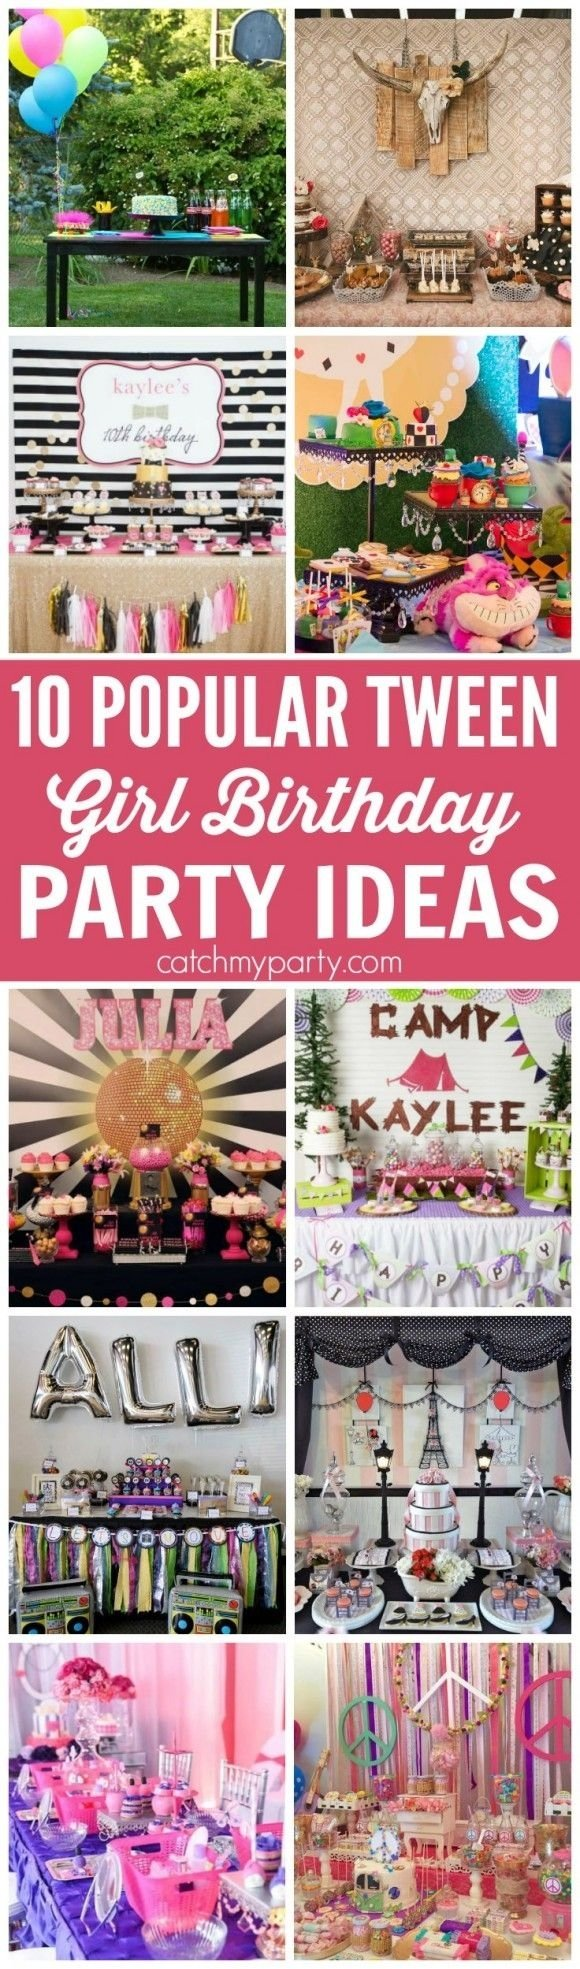 10 Nice Birthday Party Ideas For Teenage Girls 14 5 ideas for an epic indoor movie party at your house indoor movie 3